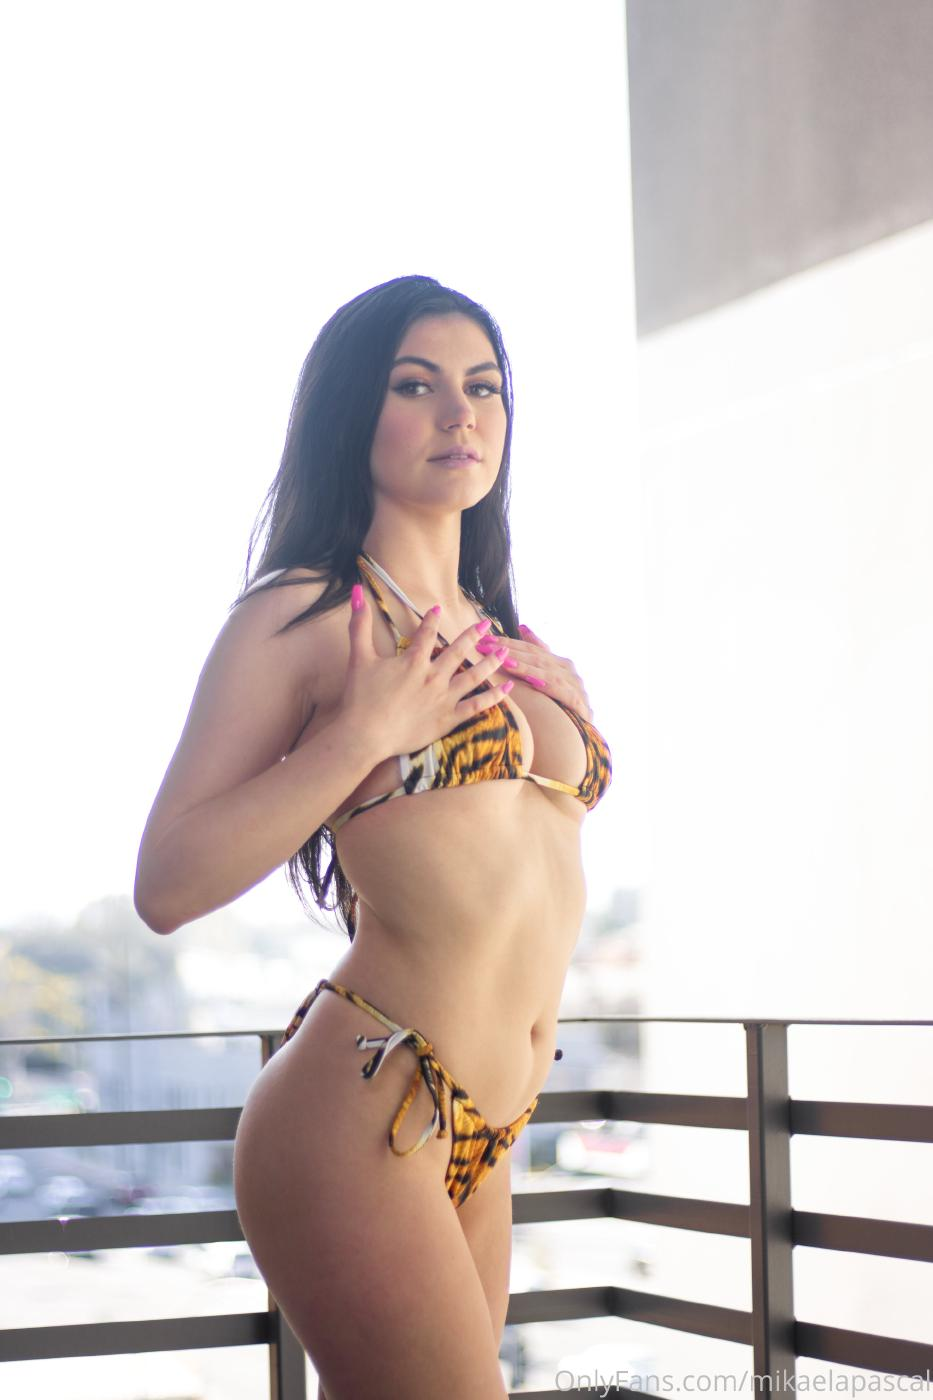 Mikaela Pascal Nude Tiger Bikini Photos Leaked 0002